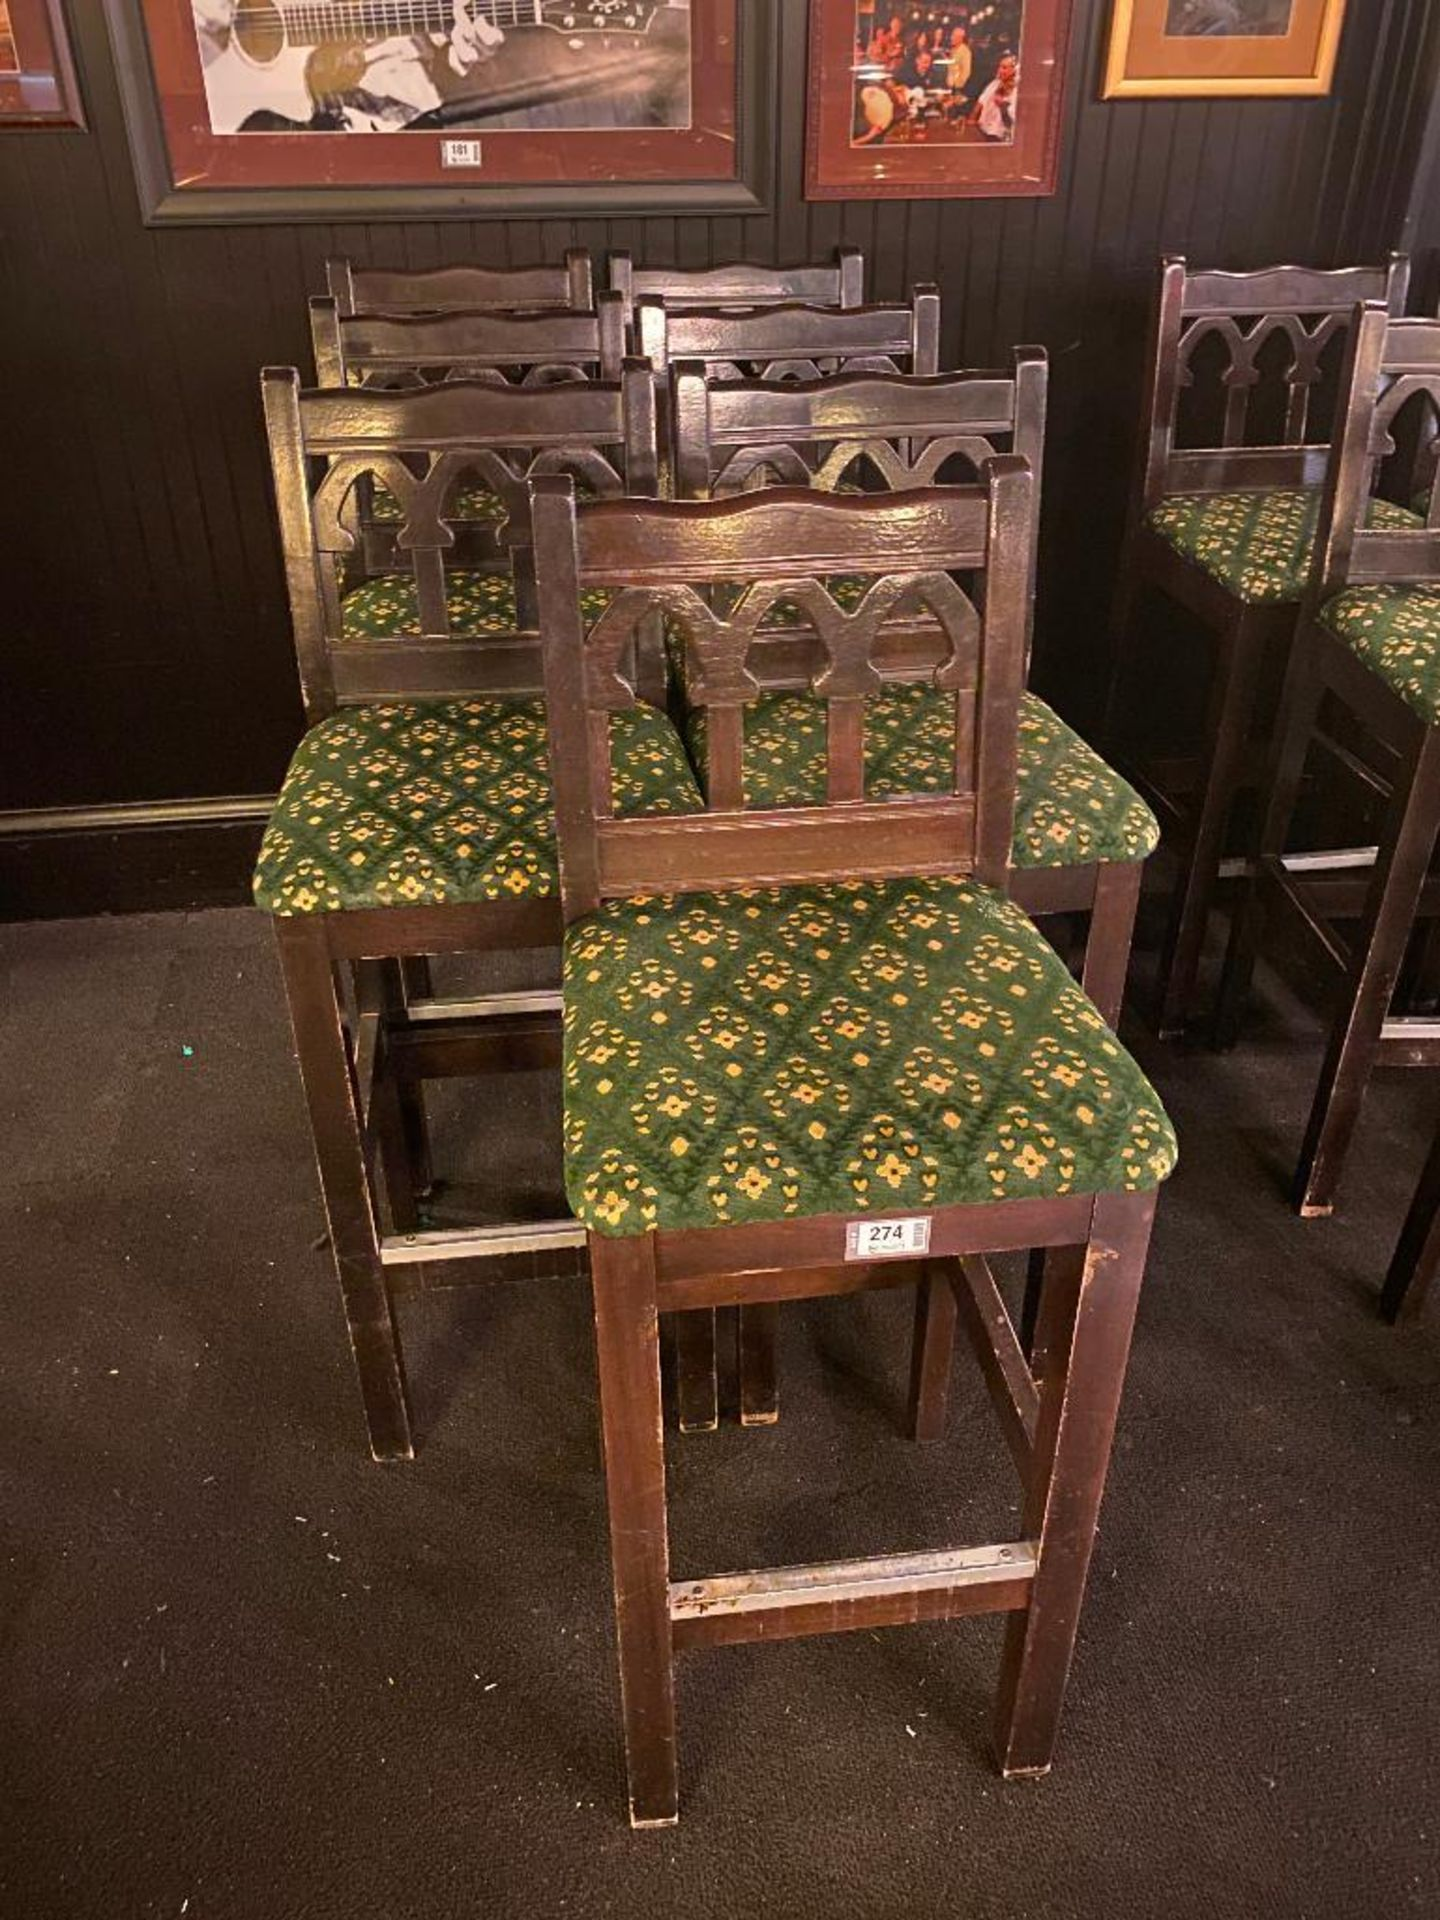 LOT OF (7) BAR STOOLS WITH BACKREST - Image 2 of 2